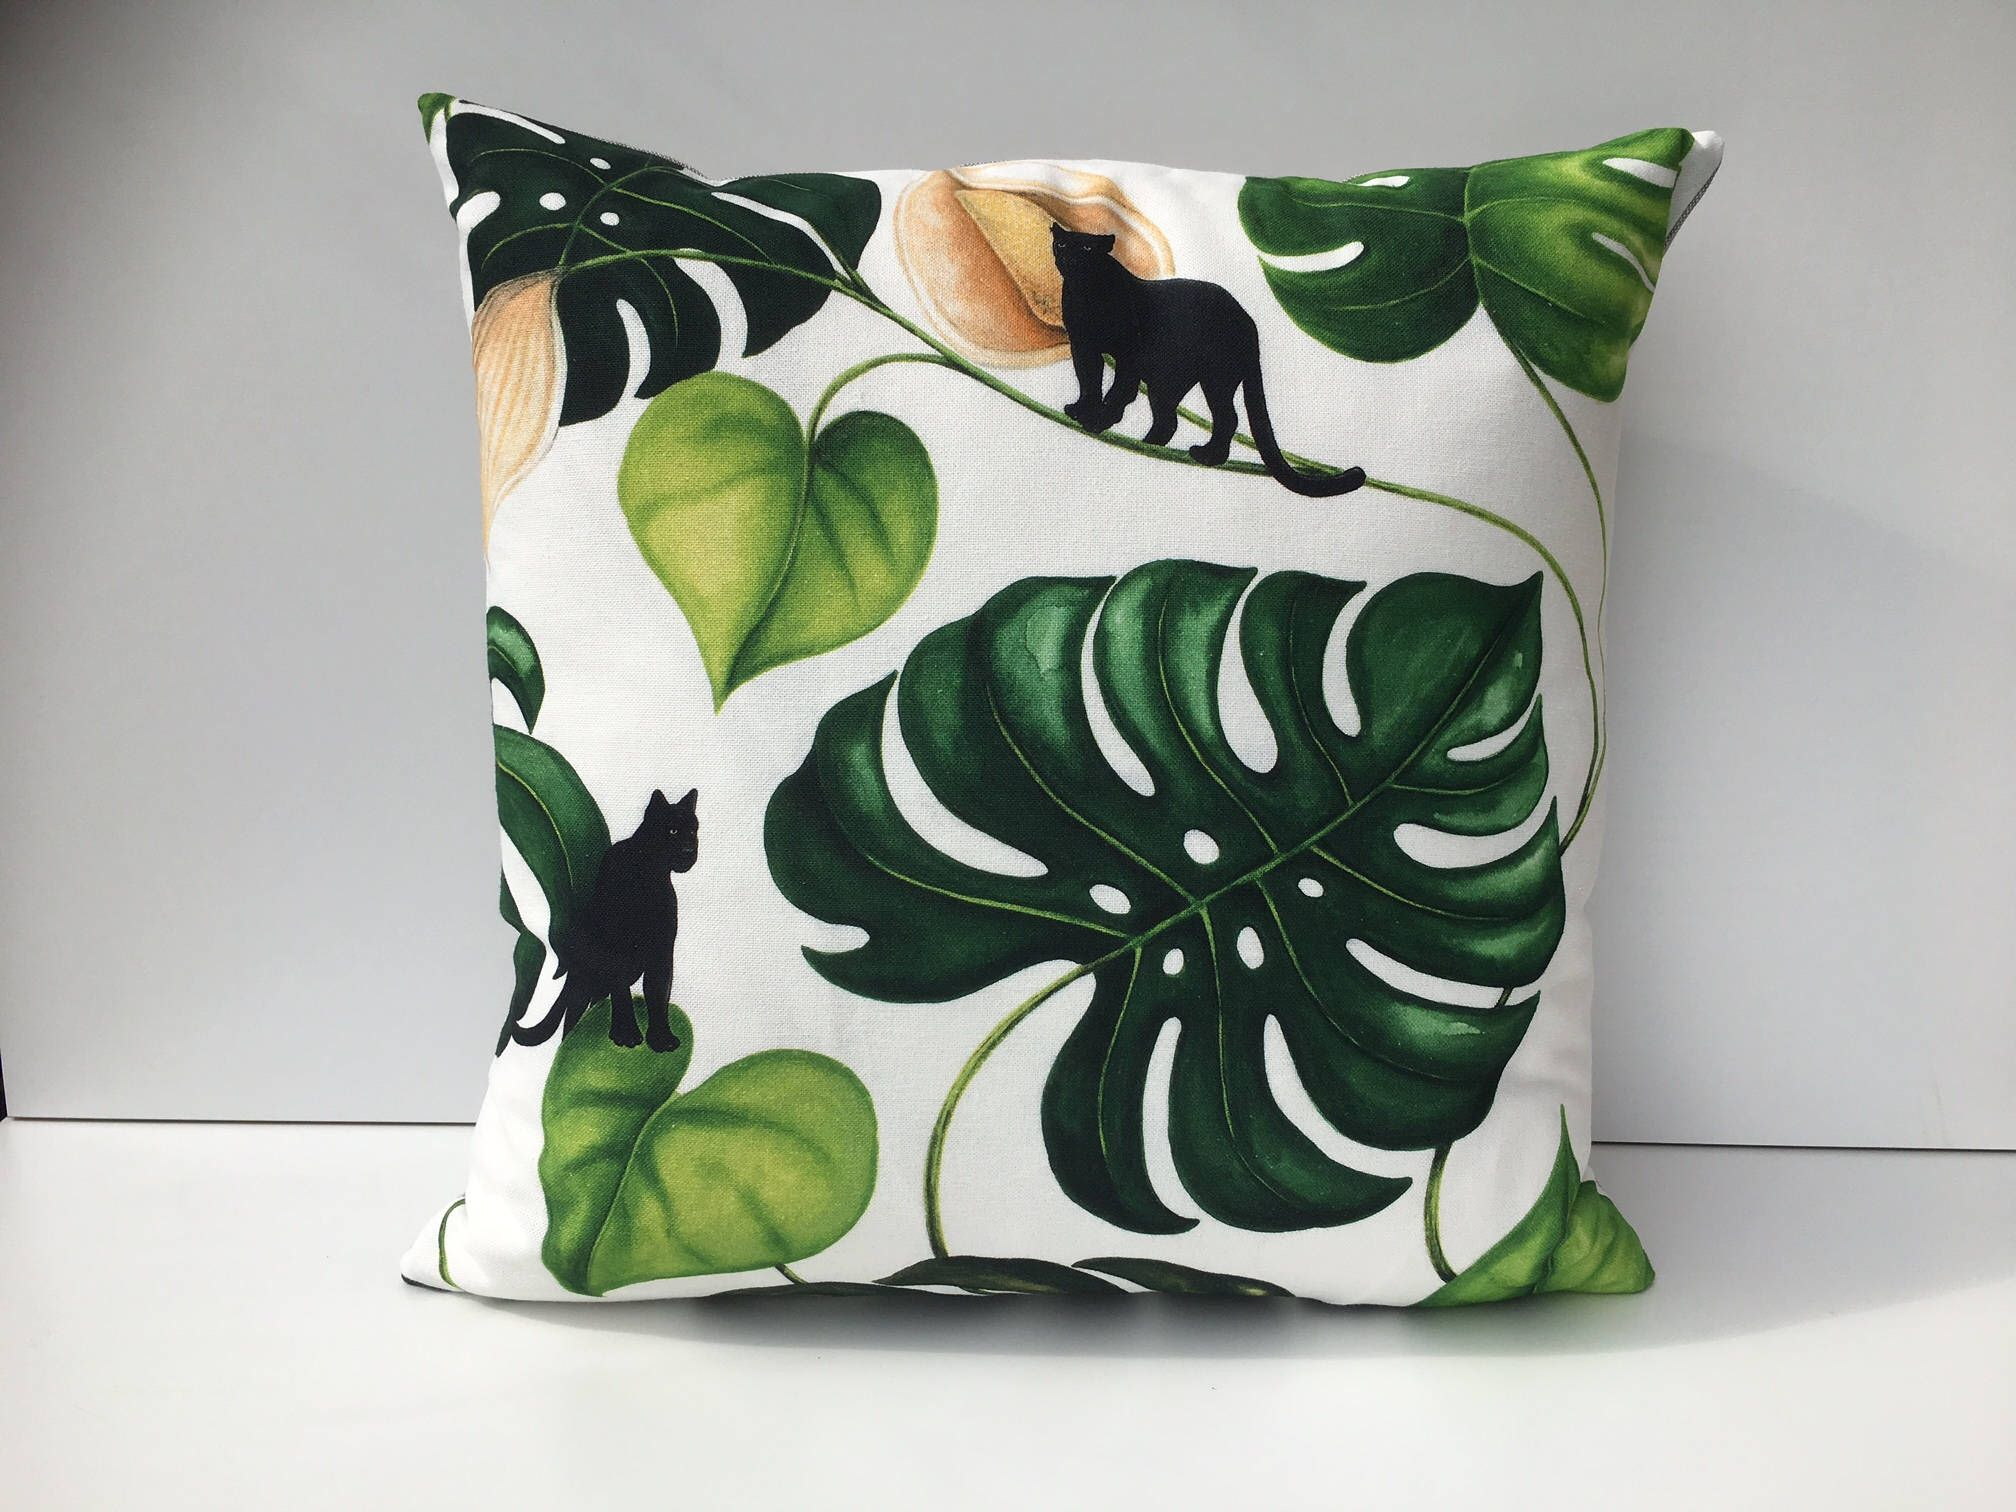 Cushion cover in monstera cheeseplant black cat panther design